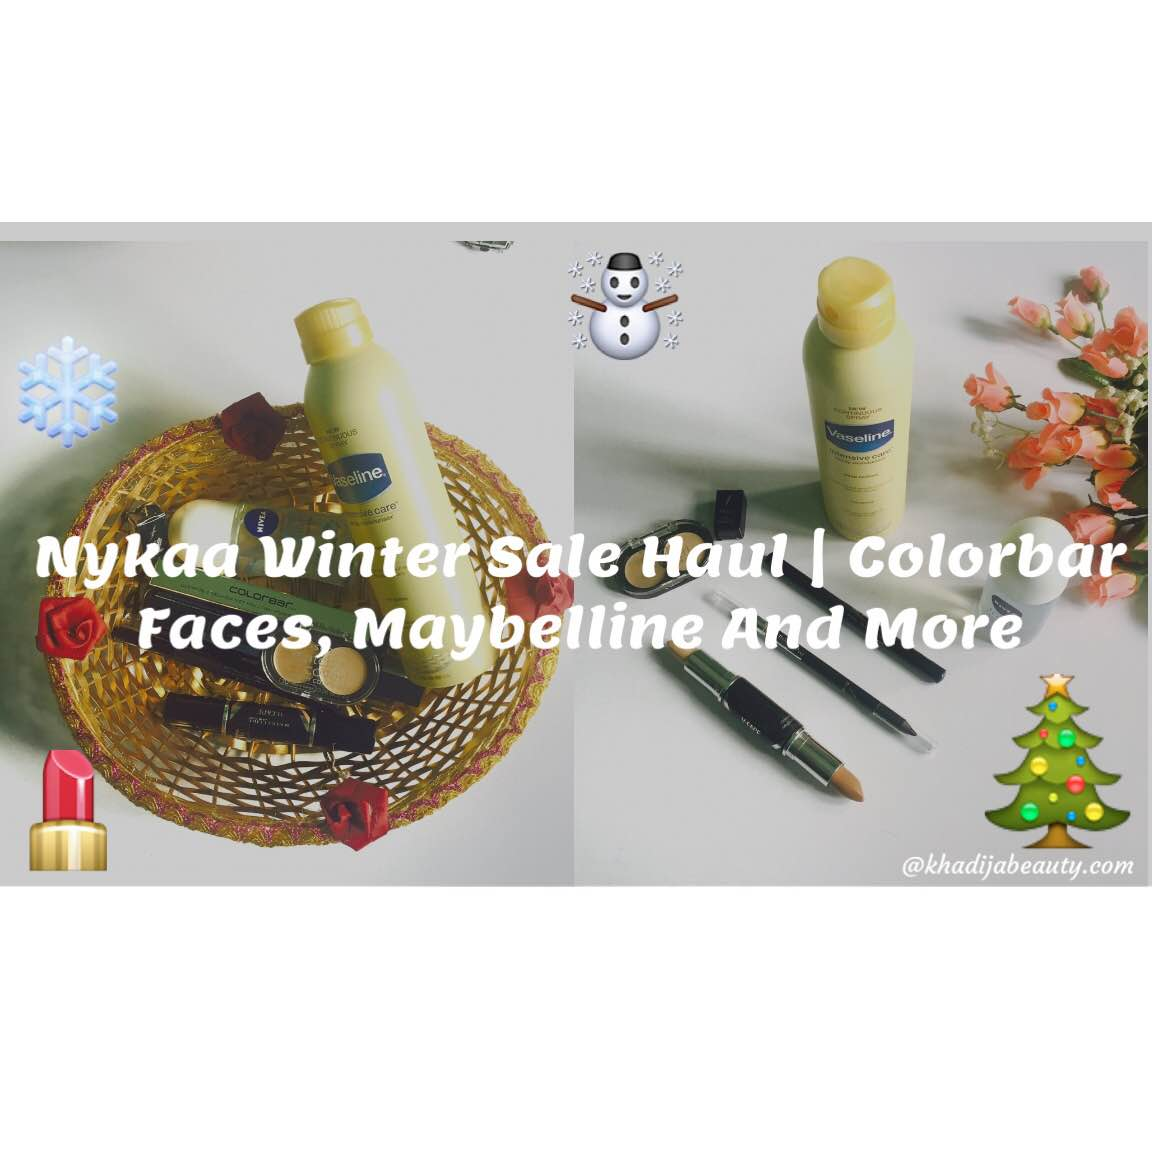 Nykaa Winter Sale Haul|Colorbar, Faces And More|Makeup and Skincare Haul